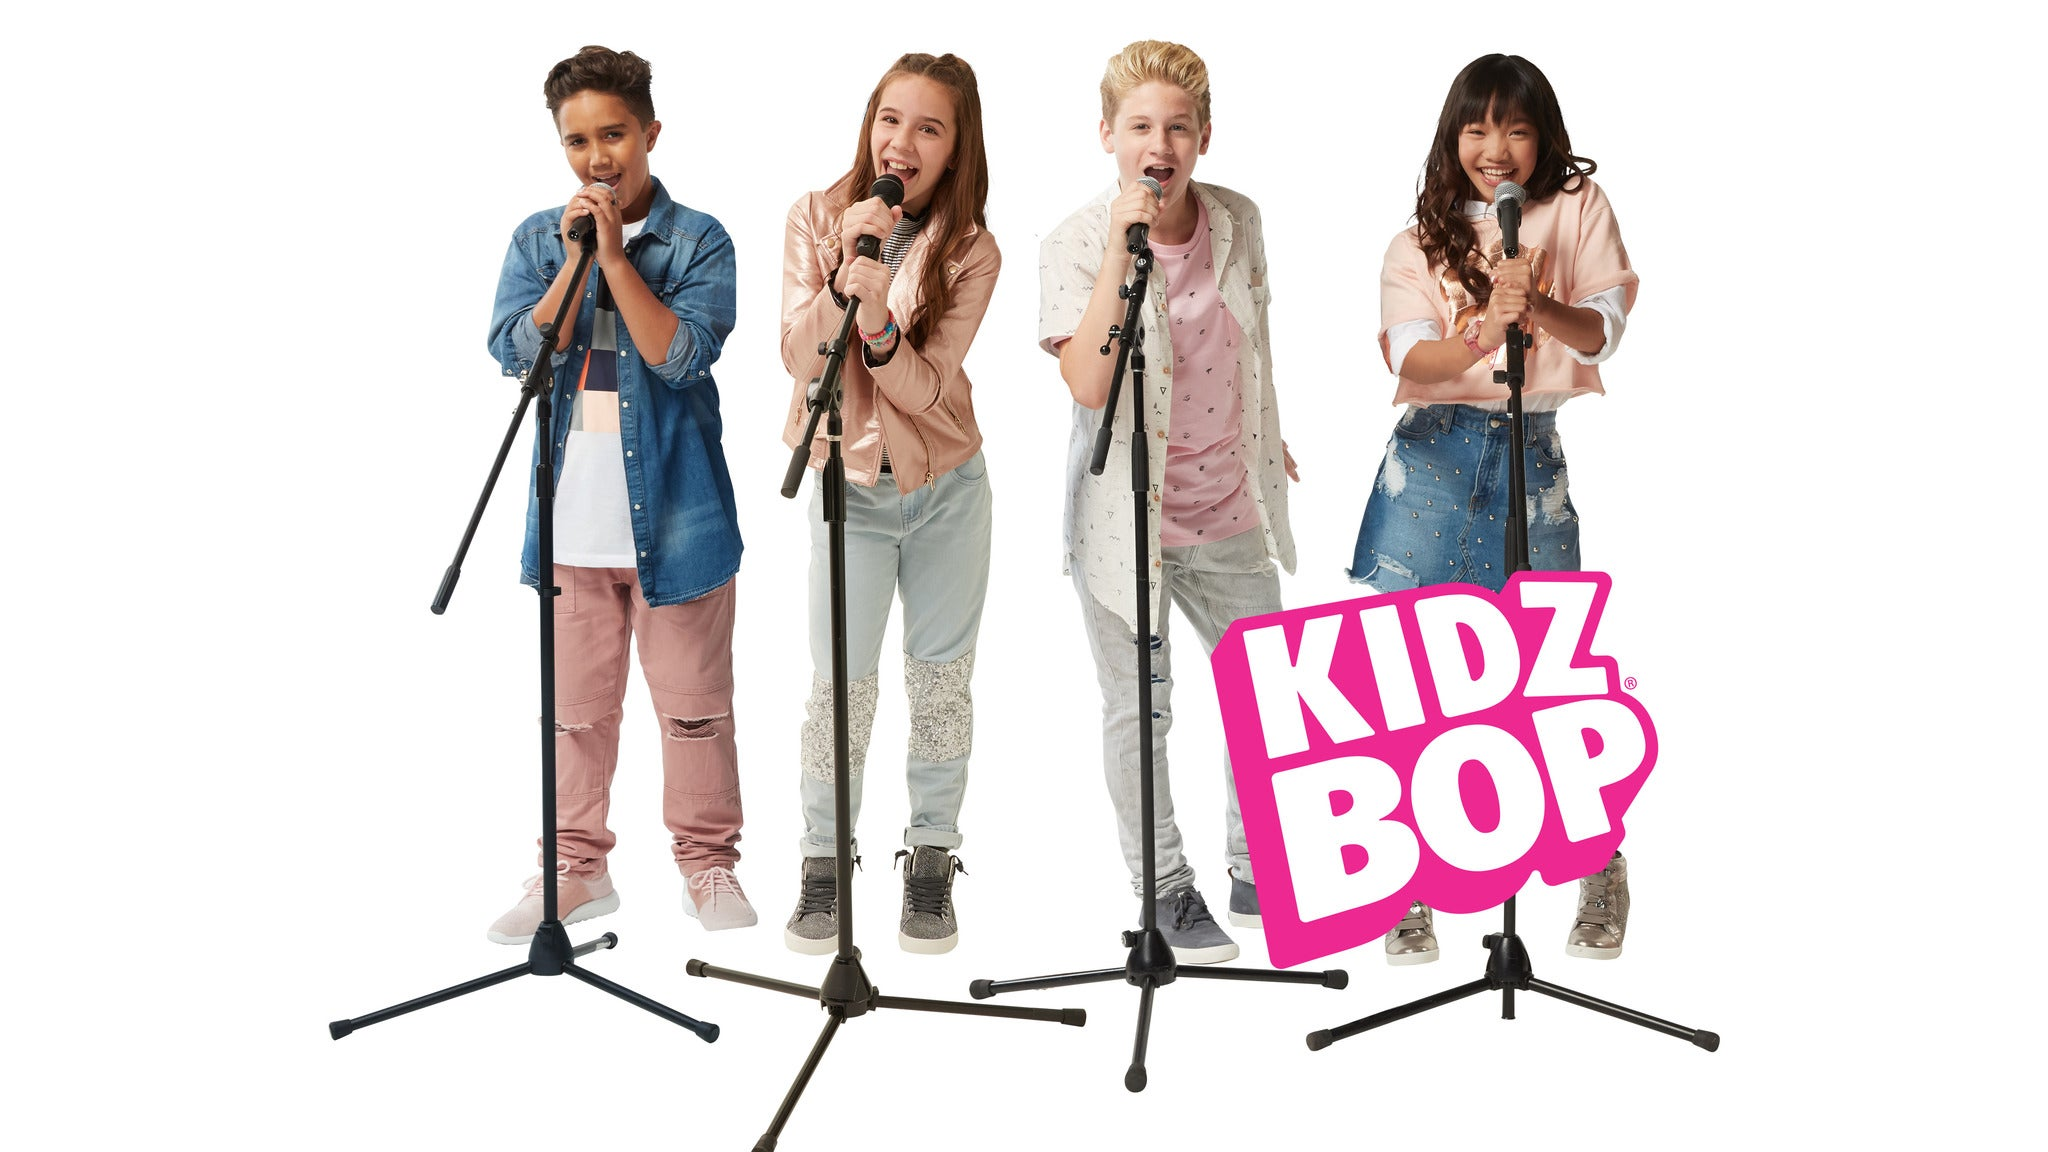 KIDZ BOP World Tour 2019 at Shoreline Amphitheatre